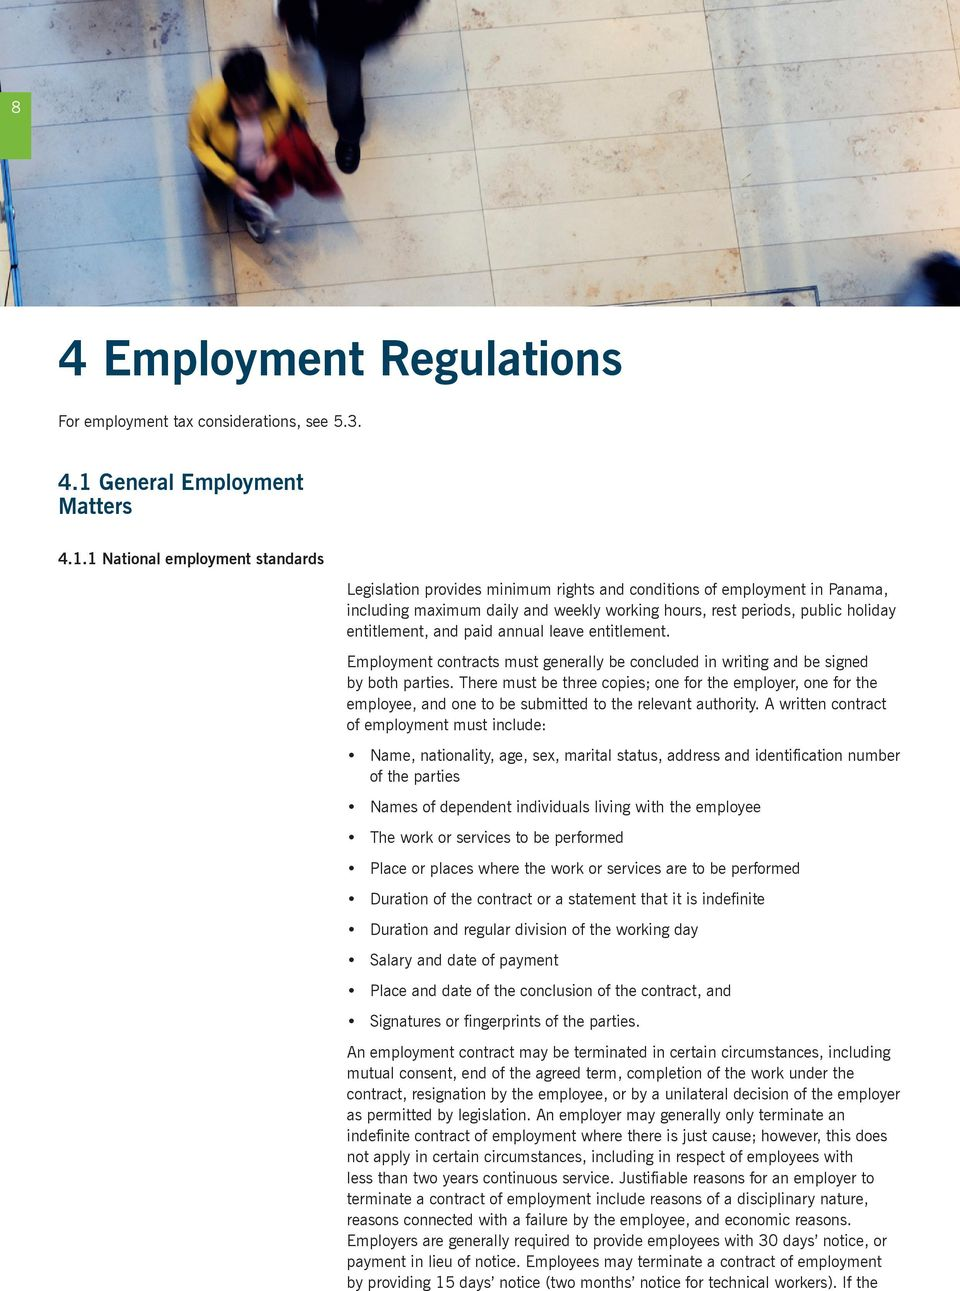 1 National employment standards Legislation provides minimum rights and conditions of employment in Panama, including maximum daily and weekly working hours, rest periods, public holiday entitlement,